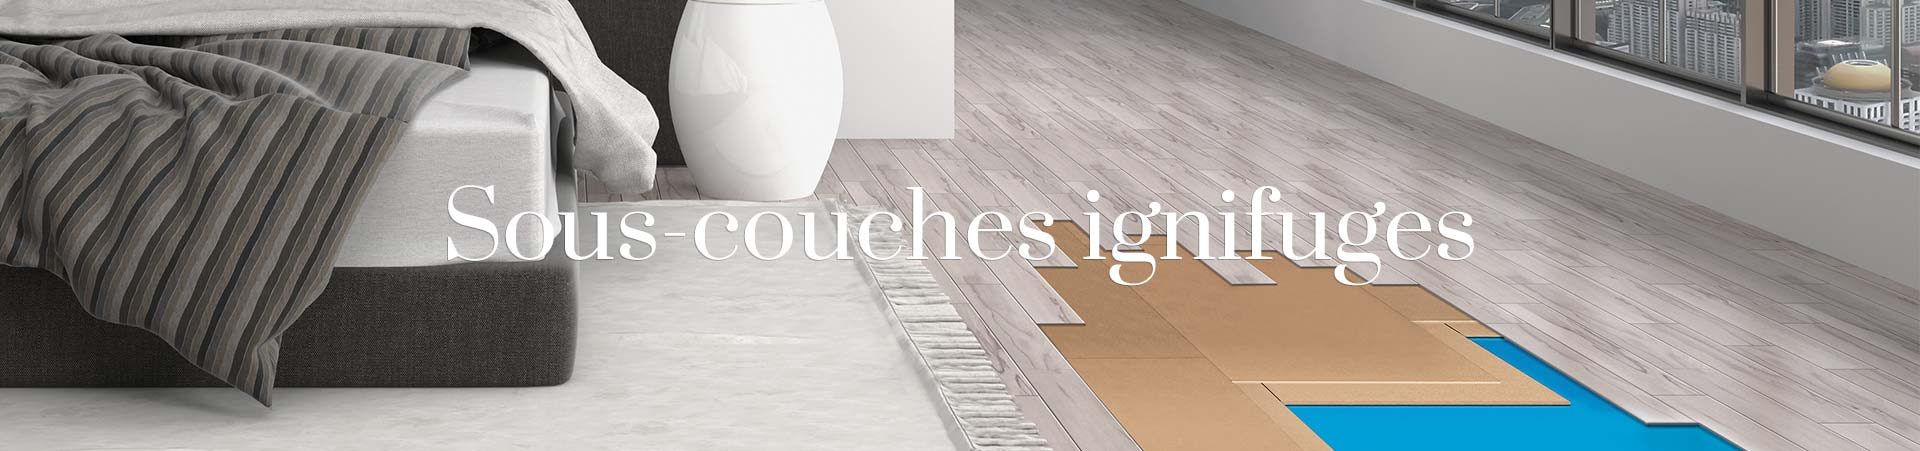 sous-couches-ignifuges